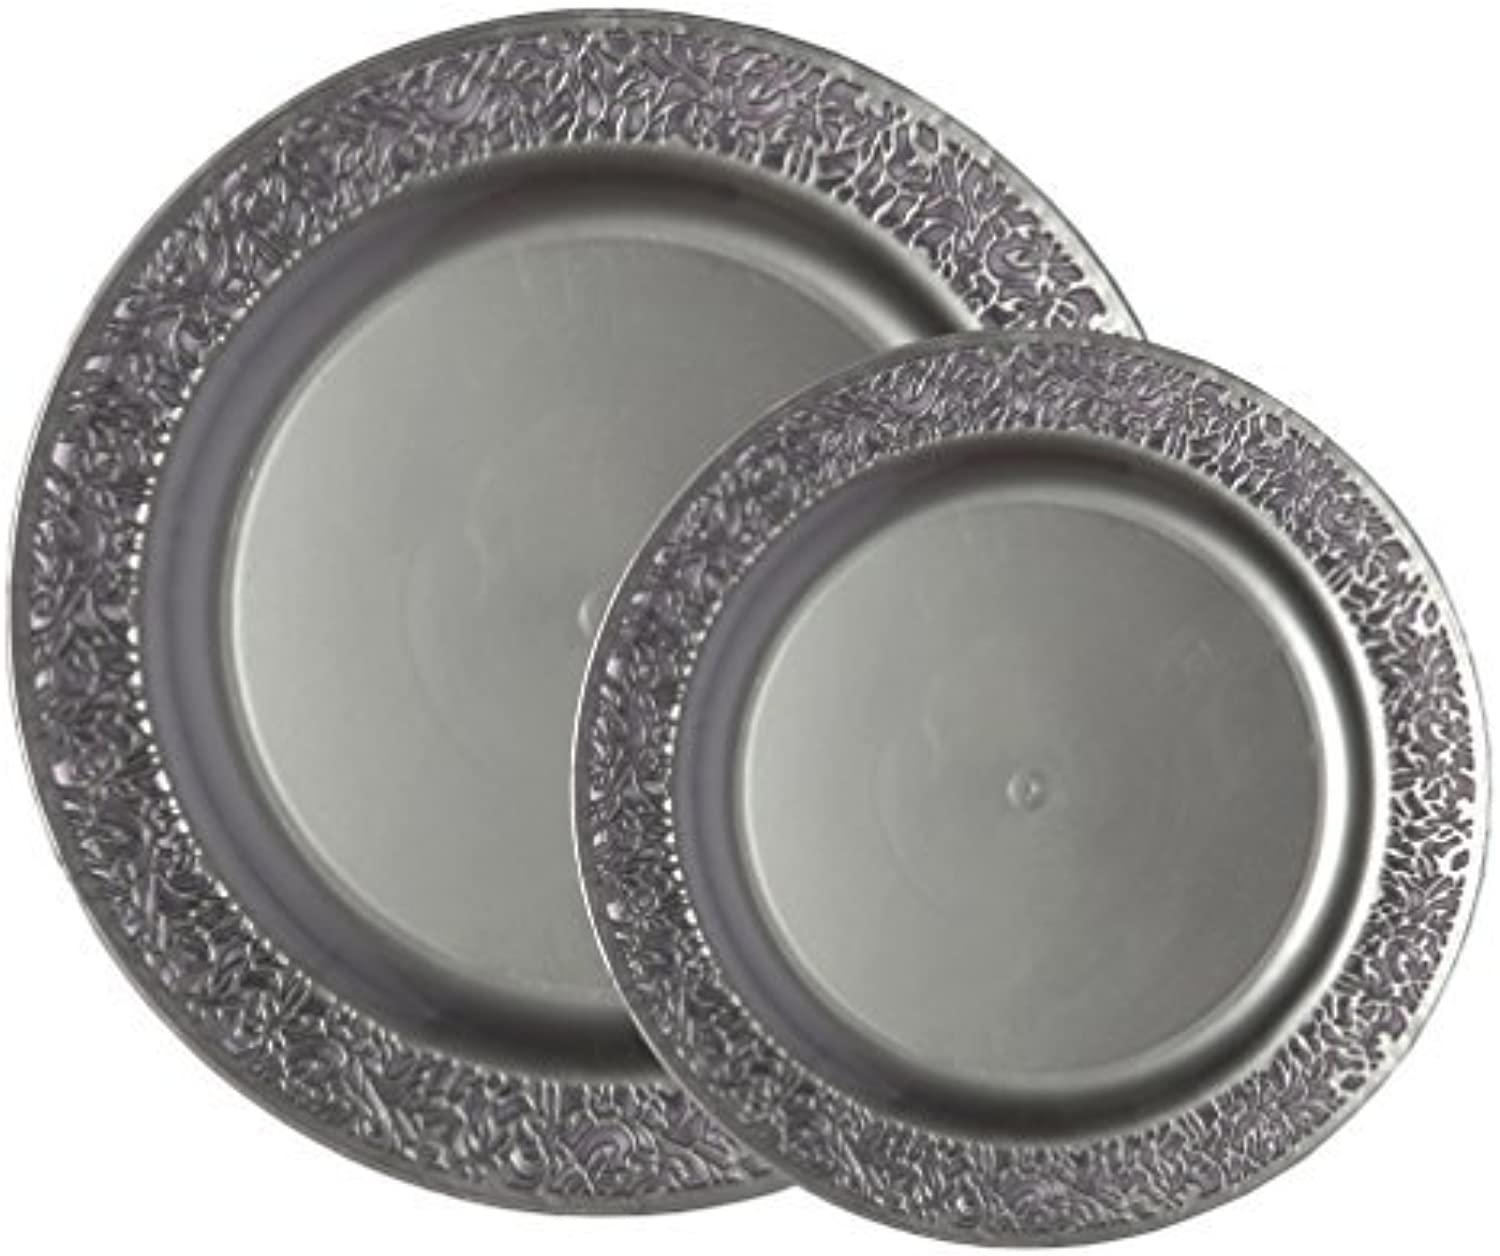 Party Joy 200-Piece Plastic Dinnerware Set   Lace Collection   (100) Dinner Plates & (100) Salad Plates   Heavy Duty Premium Plastic Plates for Wedding, Parties, Camping & More (Grey)